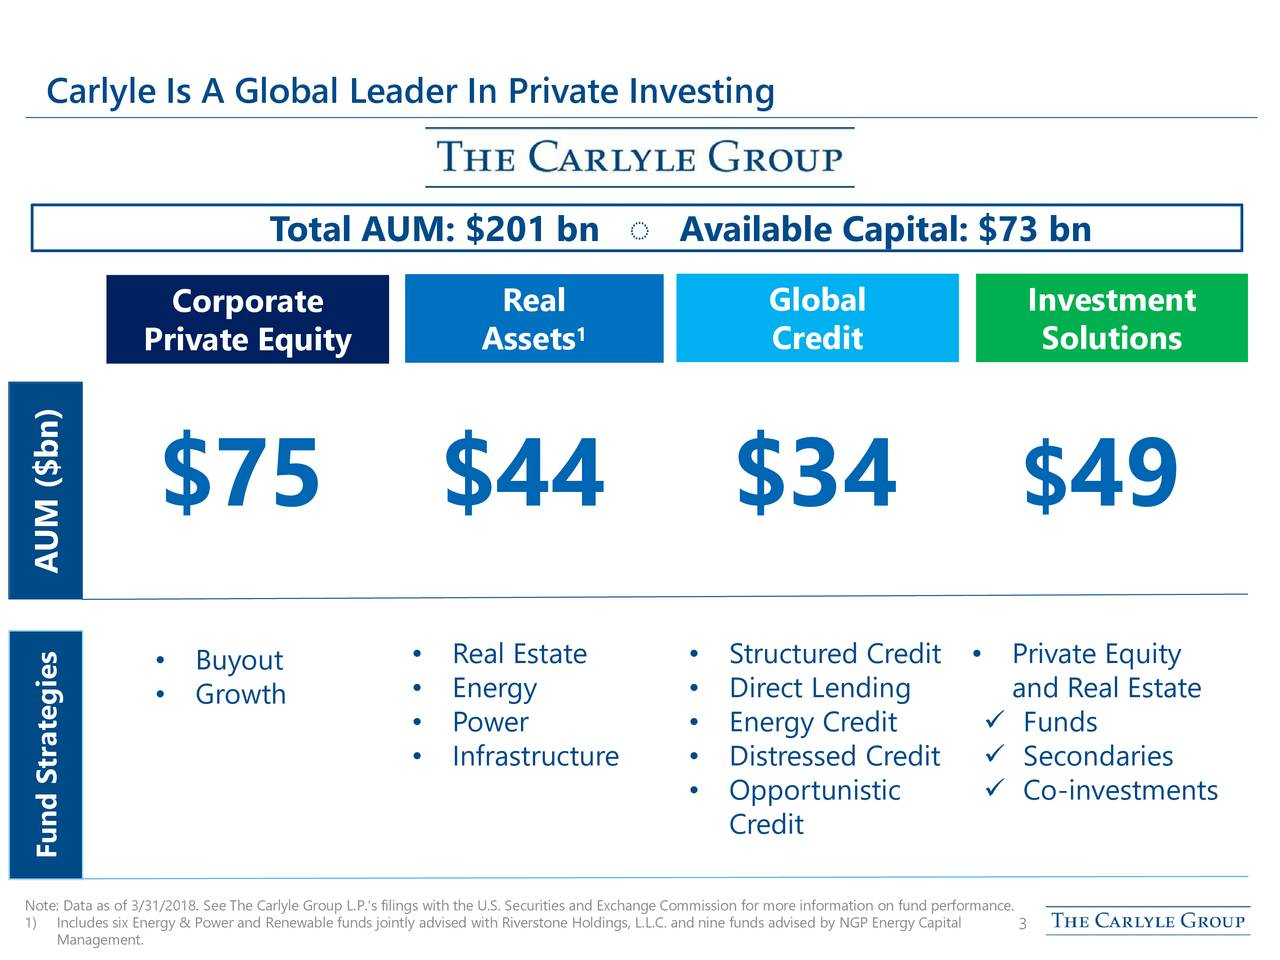 Total AUM: $201 bn ◌ Available Capital: $73 bn Corporate Real Global Investment 1 Private Equity Assets Credit Solutions ) bn $75 $44 $34 $ 49 AUM ($ • Buyout • Real Estate • Structured Cred•tPrivate Equity • Growth • Energy • Direct Lending and Real Estate • Power • Energy Credit  Funds • Infrastructure • Distressed Credi Secondaries • Opportunistic  Co-investments Credit Fund Strategies 1)Includes six Energy & Power and Renewable funds jointly advis3d with Riverstone Holdings, L.L.C. andnine funds advised by NGP Energy Capital performance.